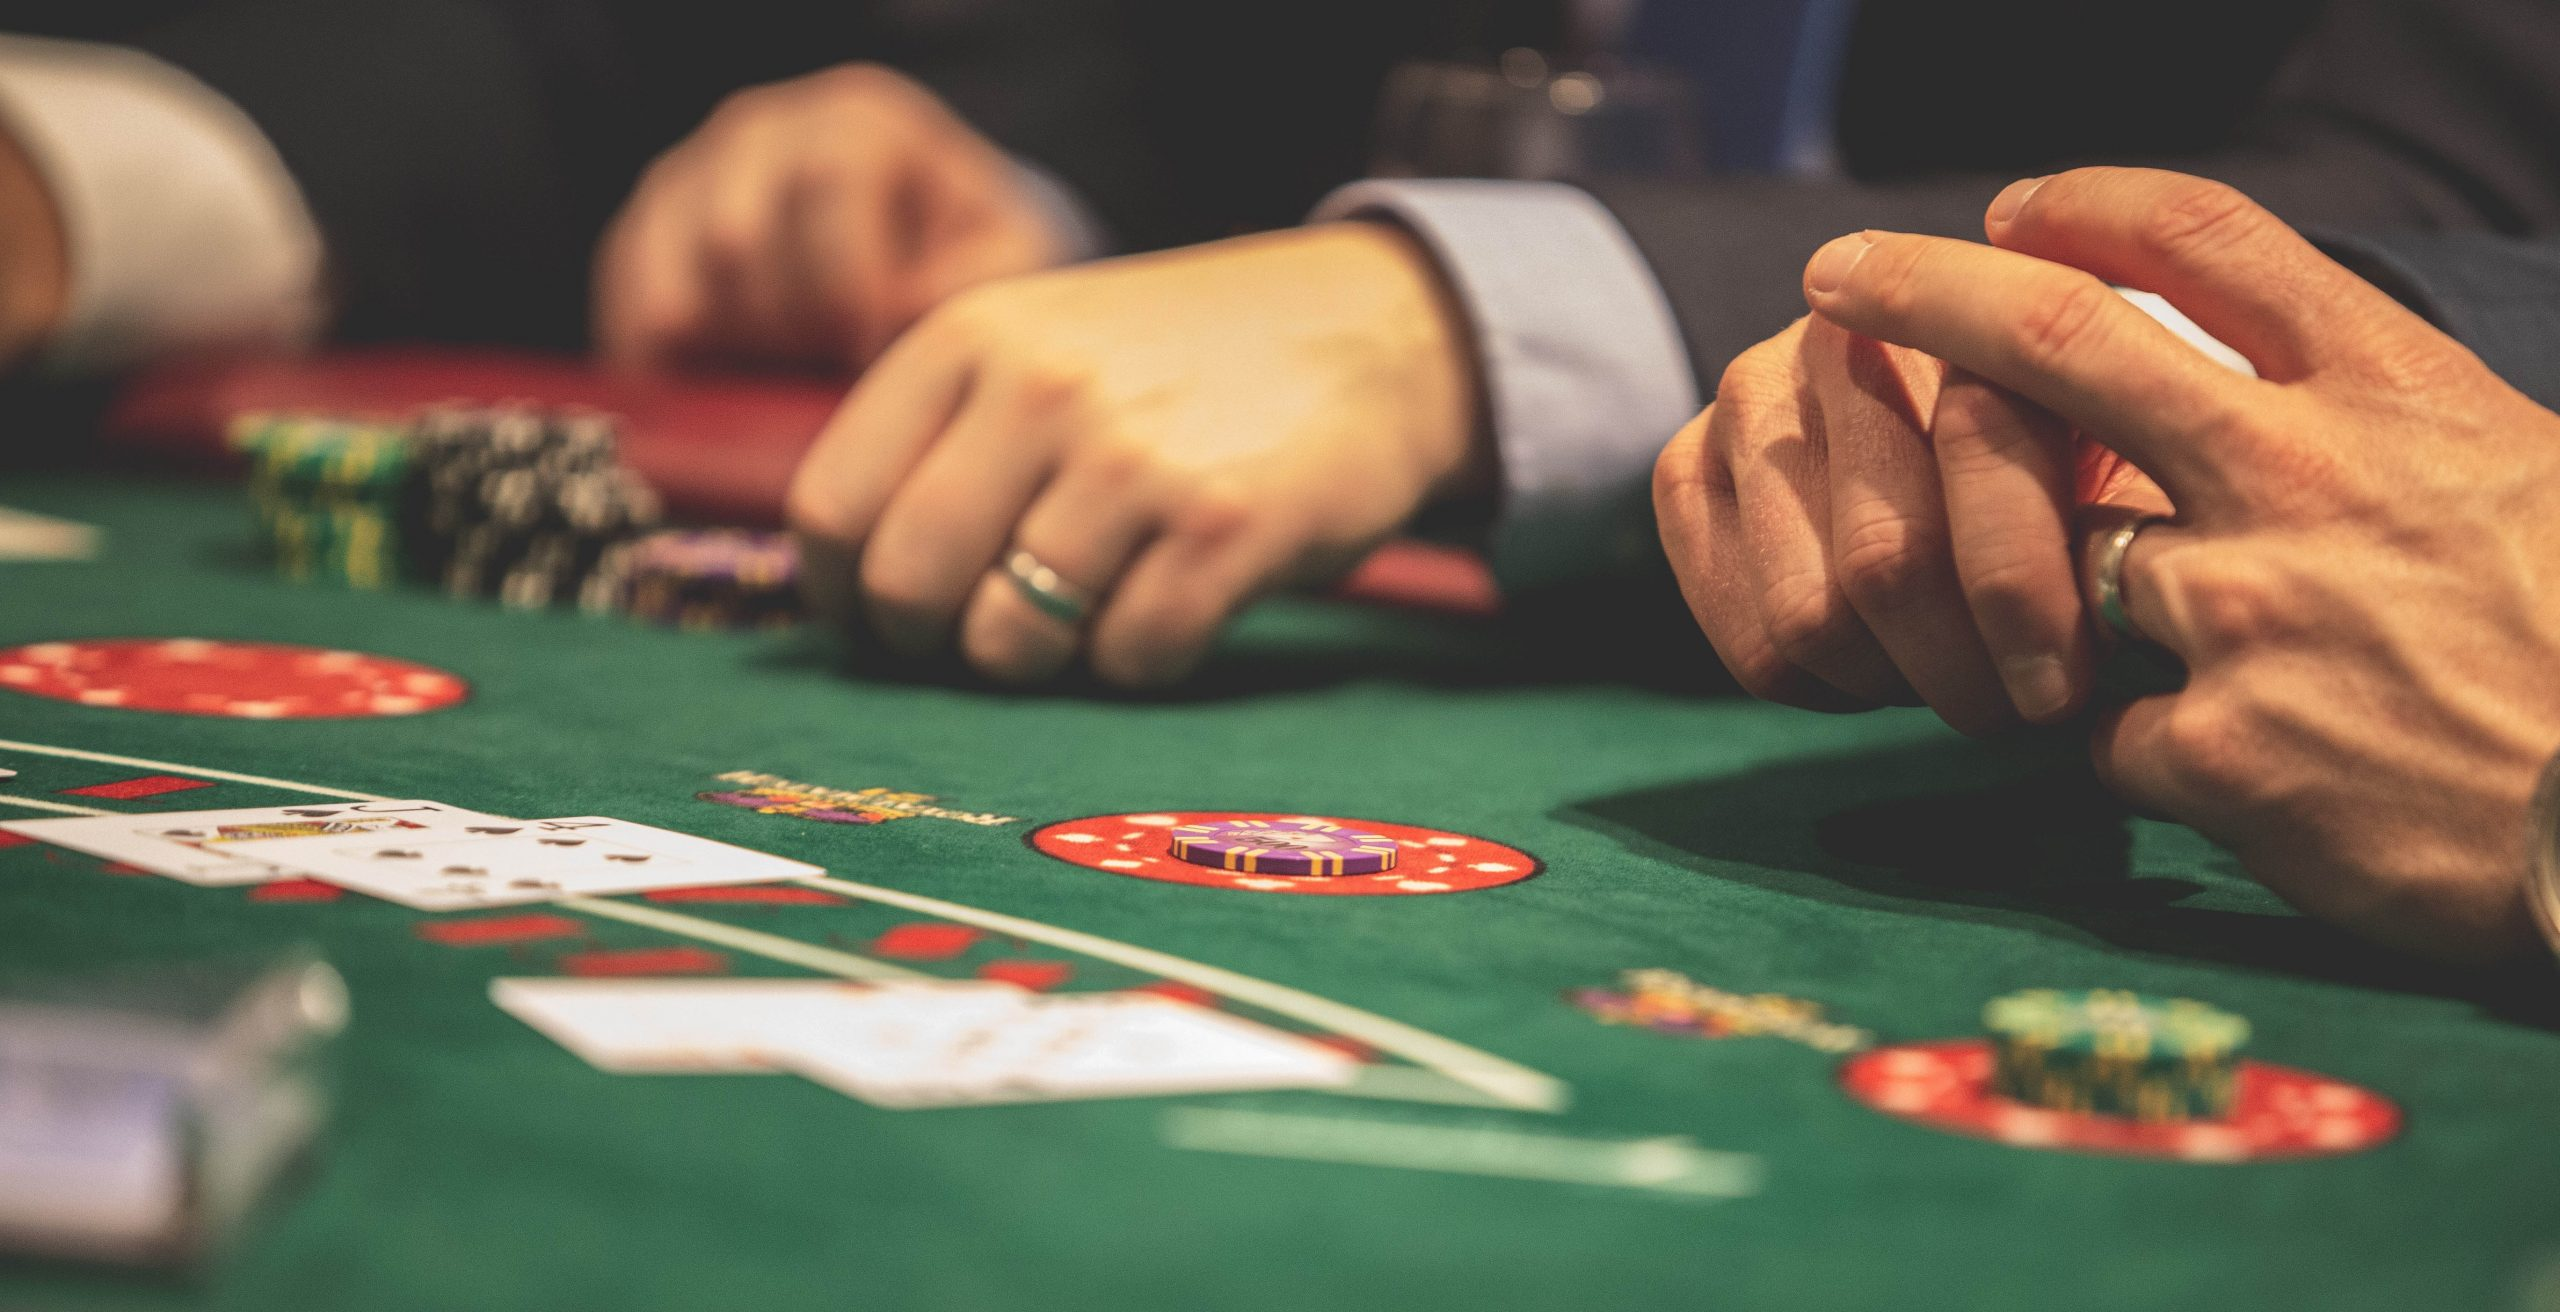 On betFIRST Casino you can play blackjack online